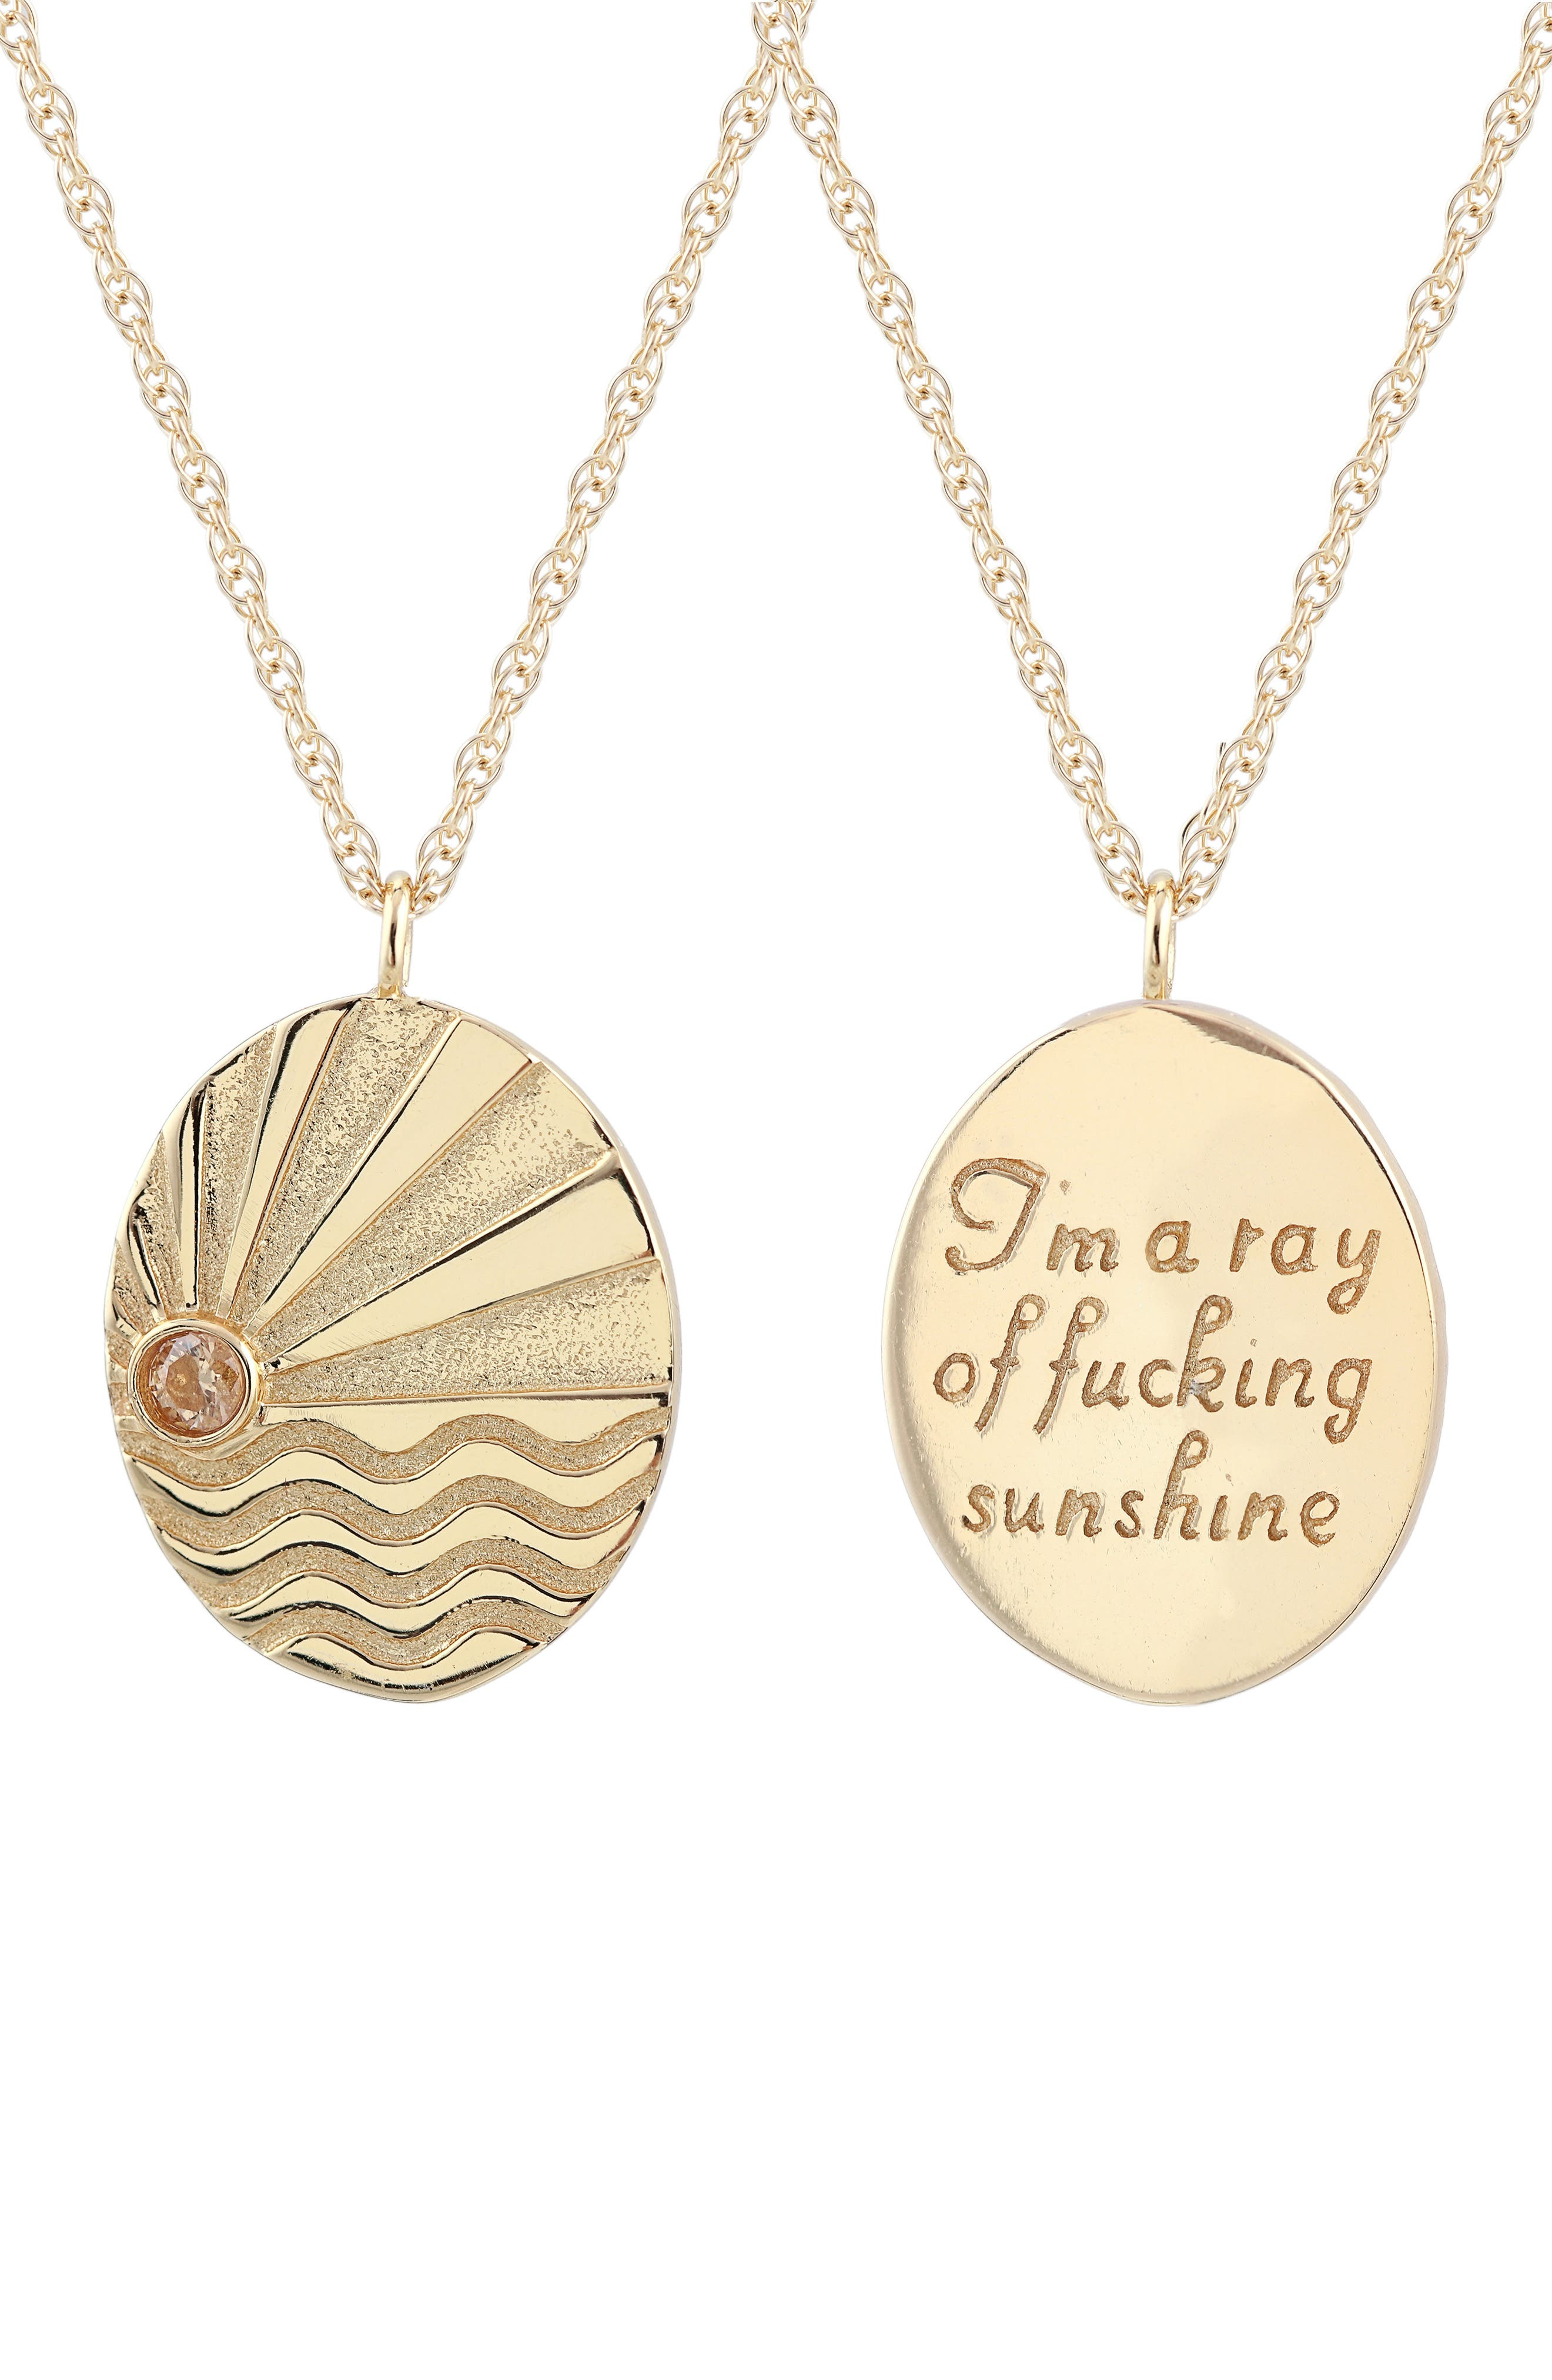 Kris Nations Ray of Sunshine Charm Necklace in 18K Gold Vermeil at Nordstrom